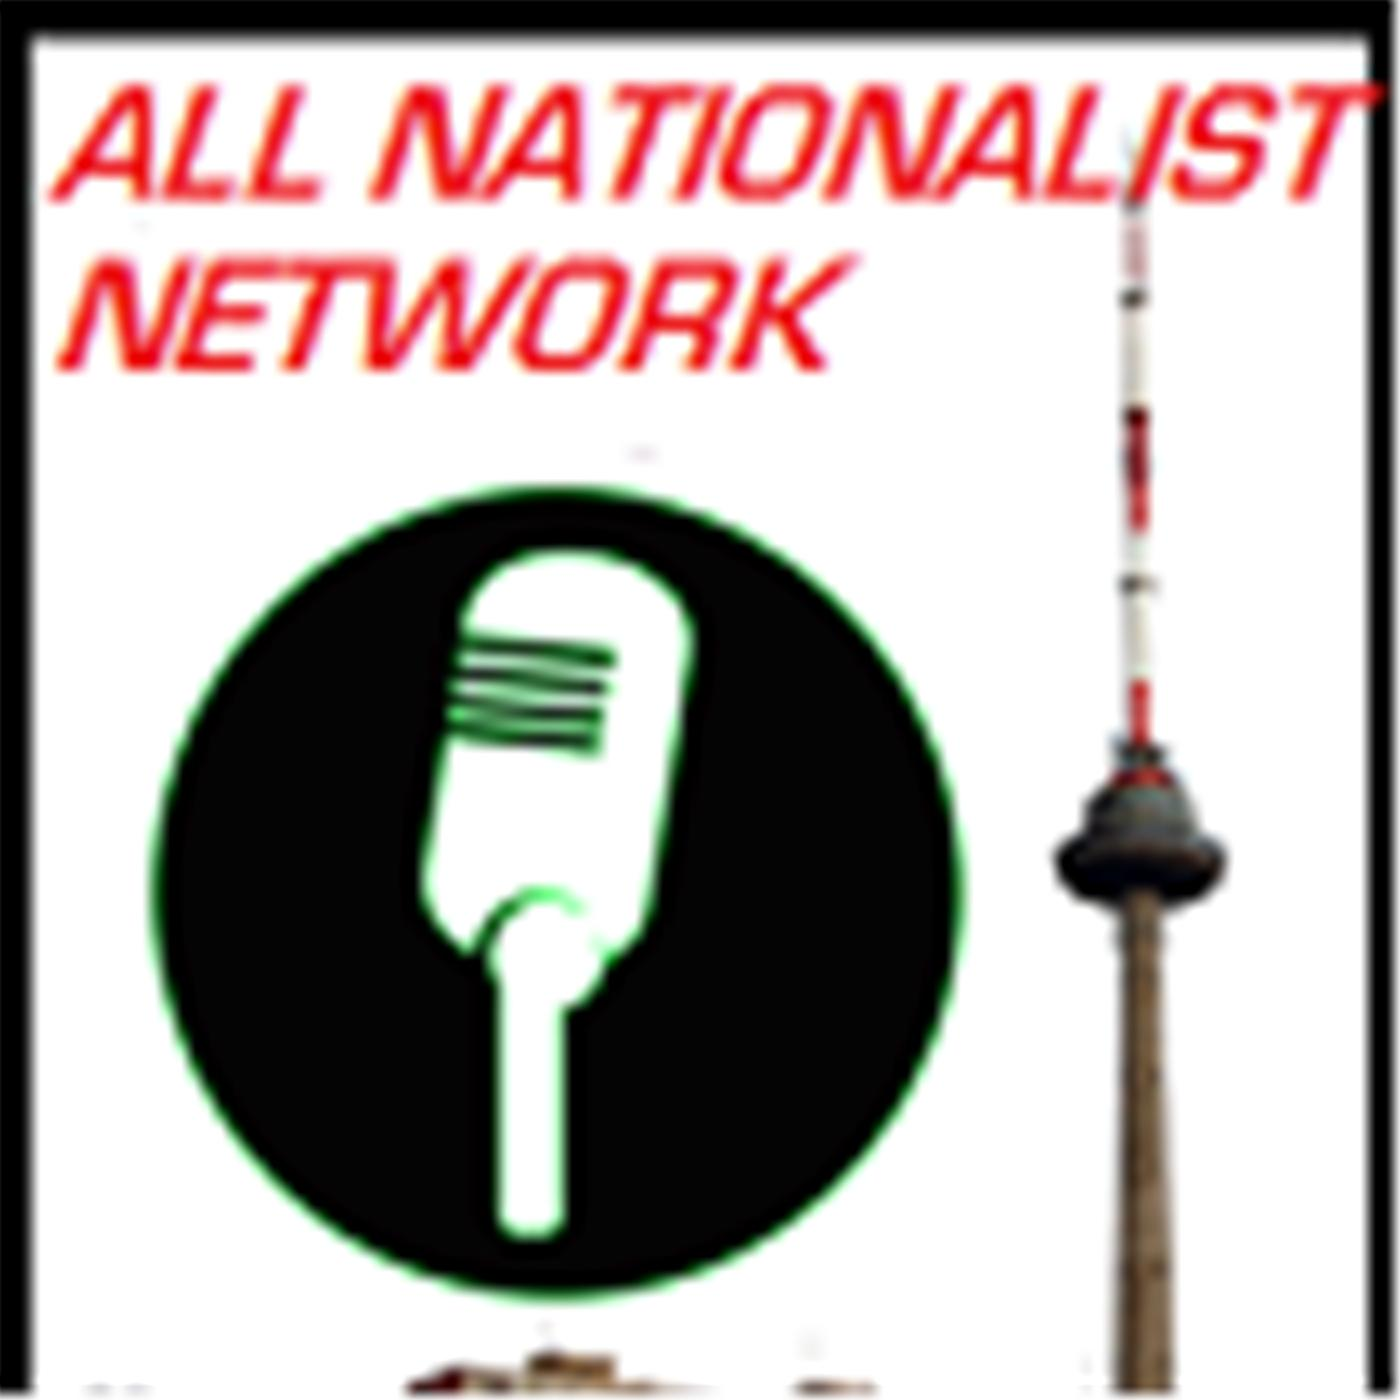 ALL NATIONALIST NETWORK